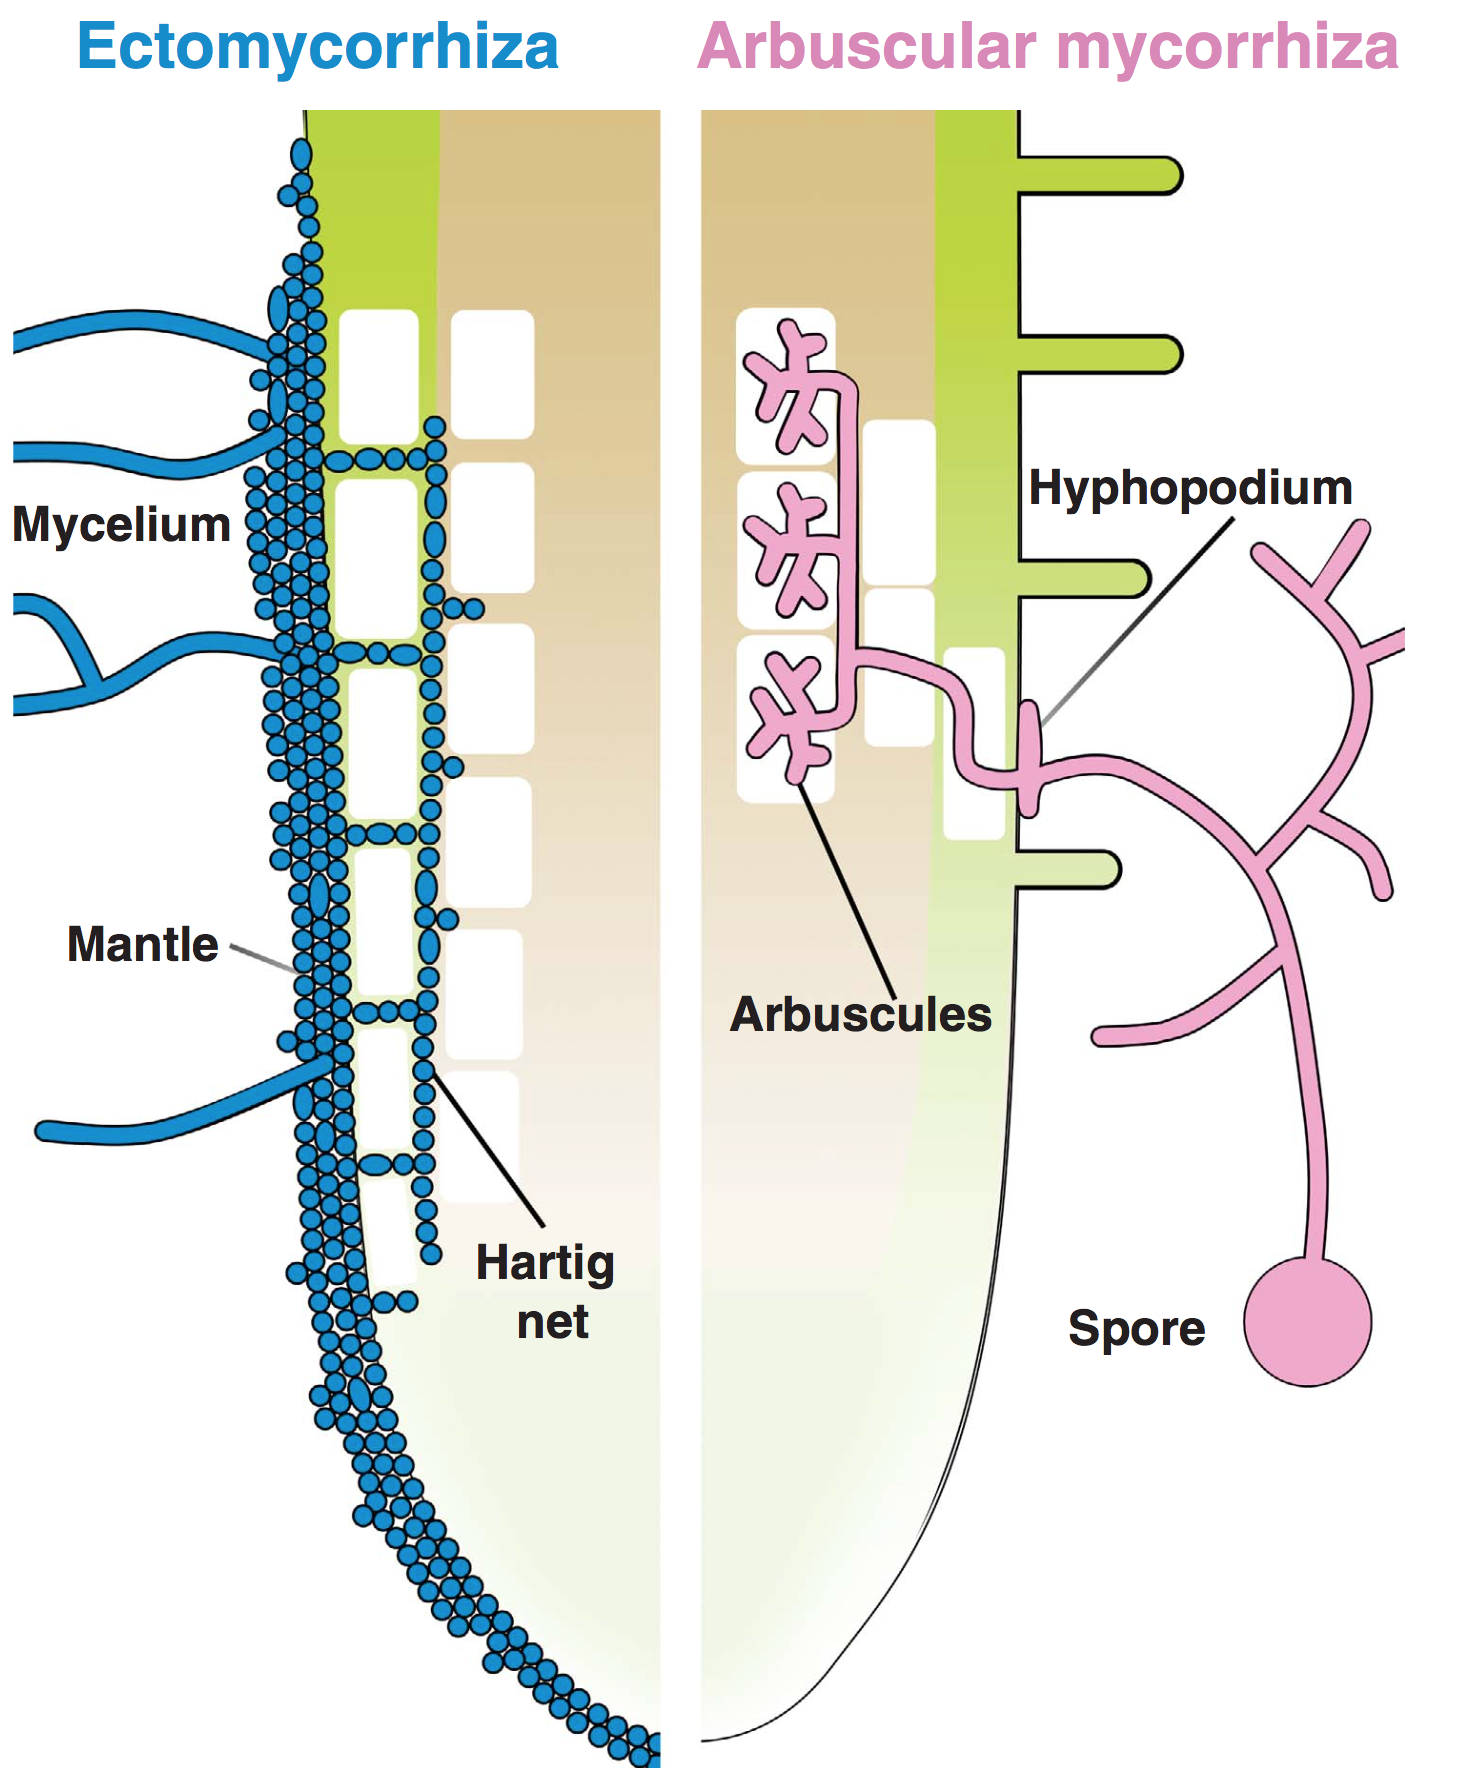 Two mycorrhizal types.  From Bonfante & Genre 2010 .